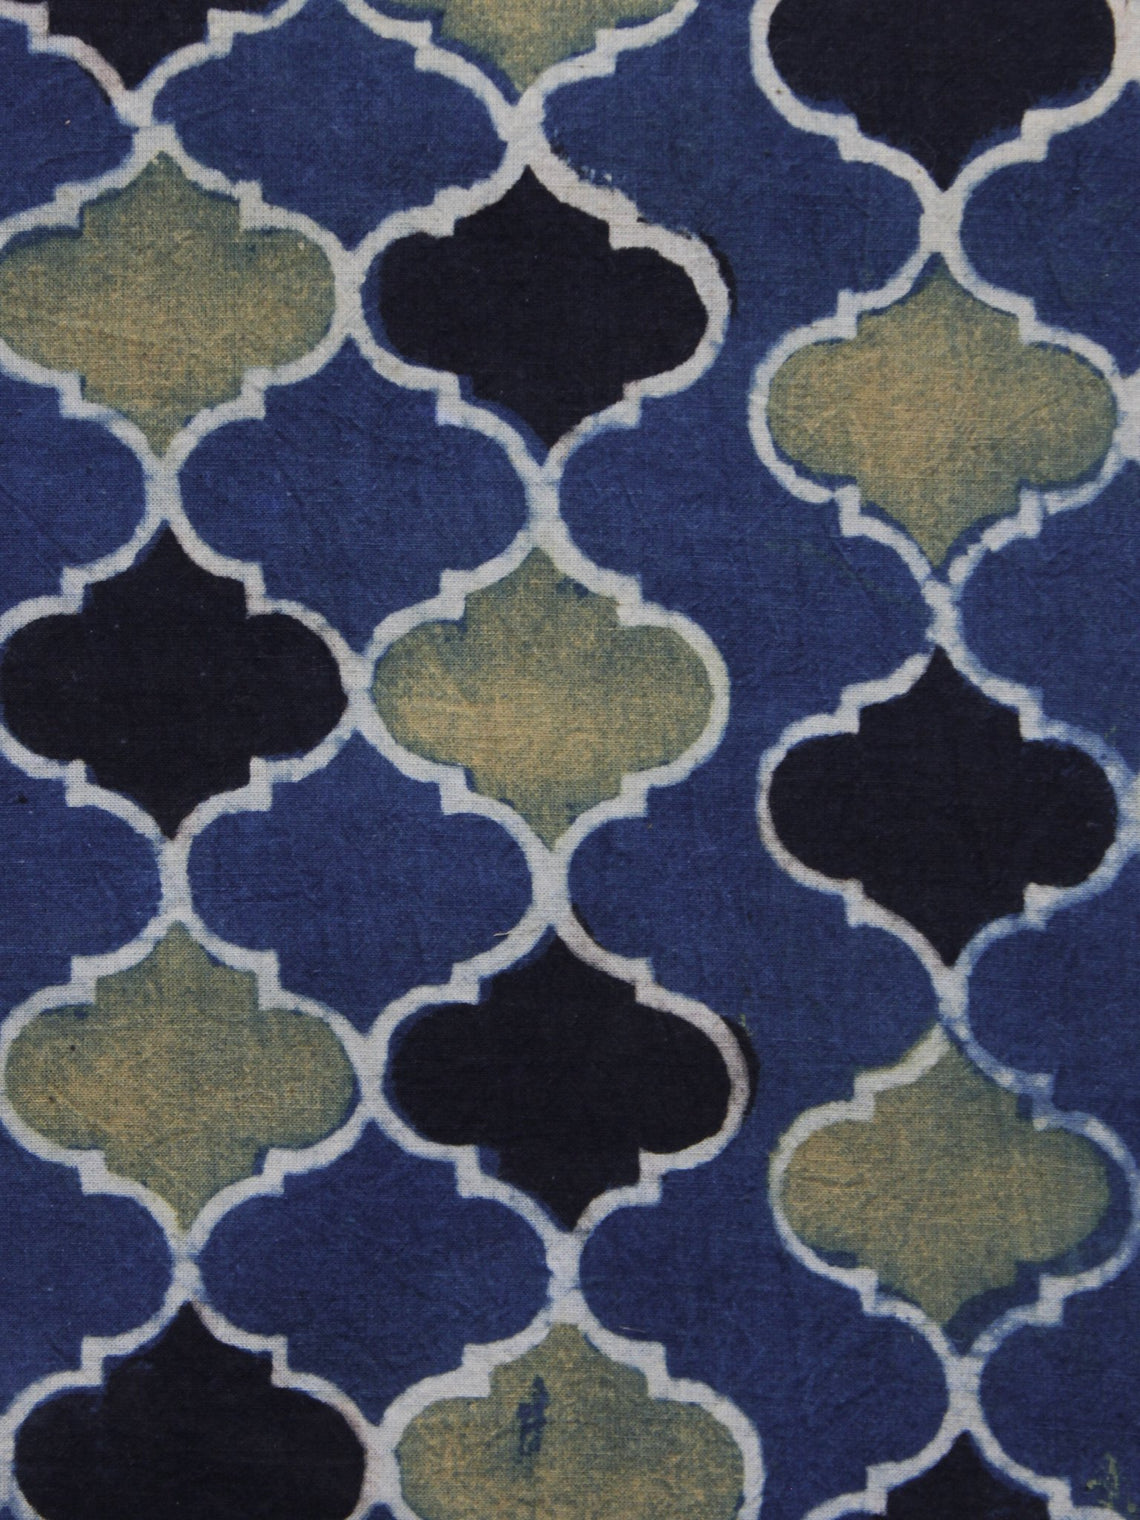 Blue Black Olive green Ajrakh Printed Cotton Fabric Per Meter - F003F1177